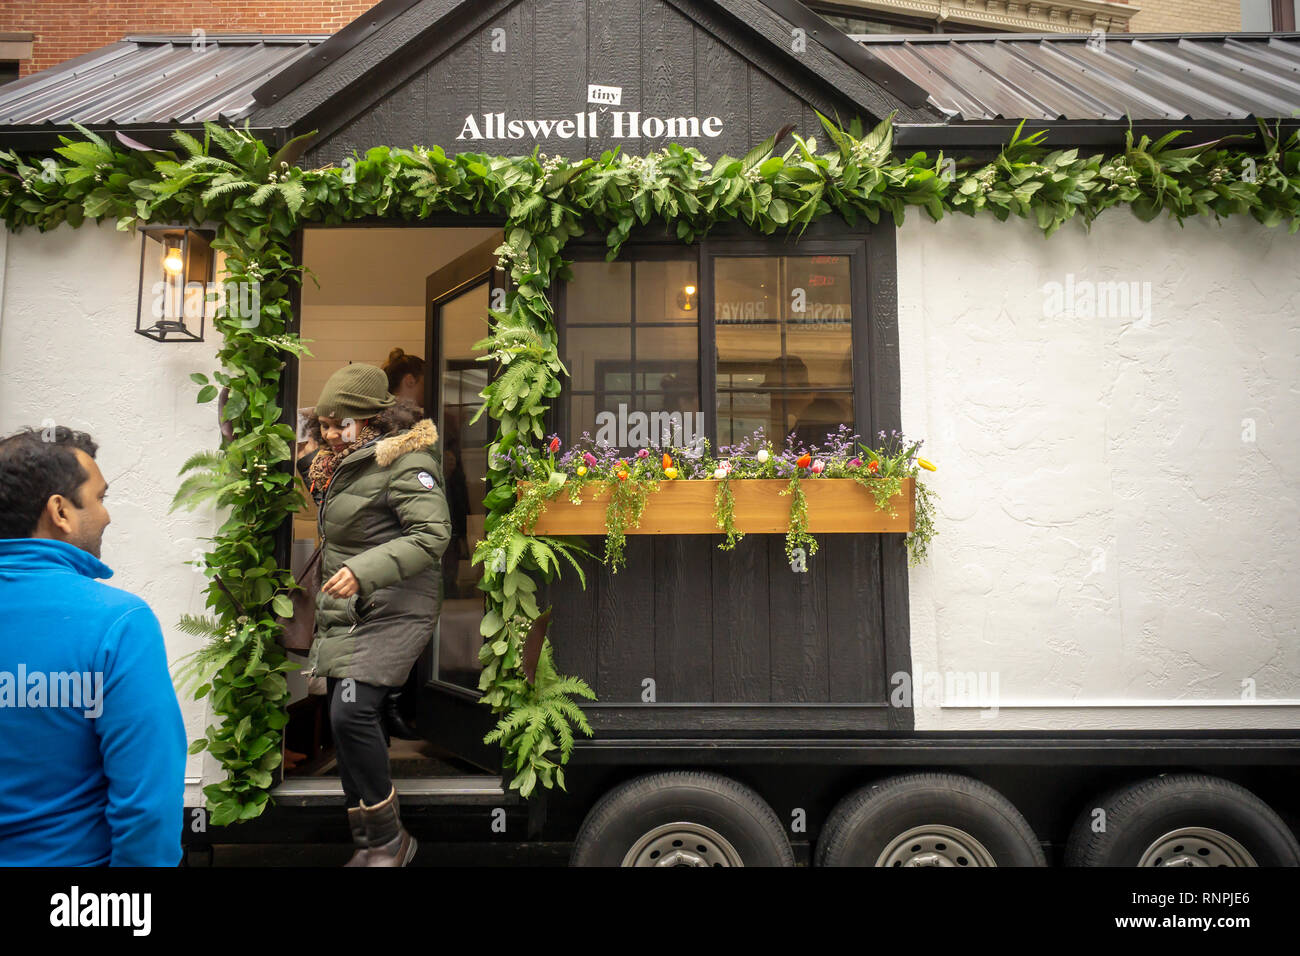 Visitors To The Online Mattress Retailer Allswell Tiny House Tour At